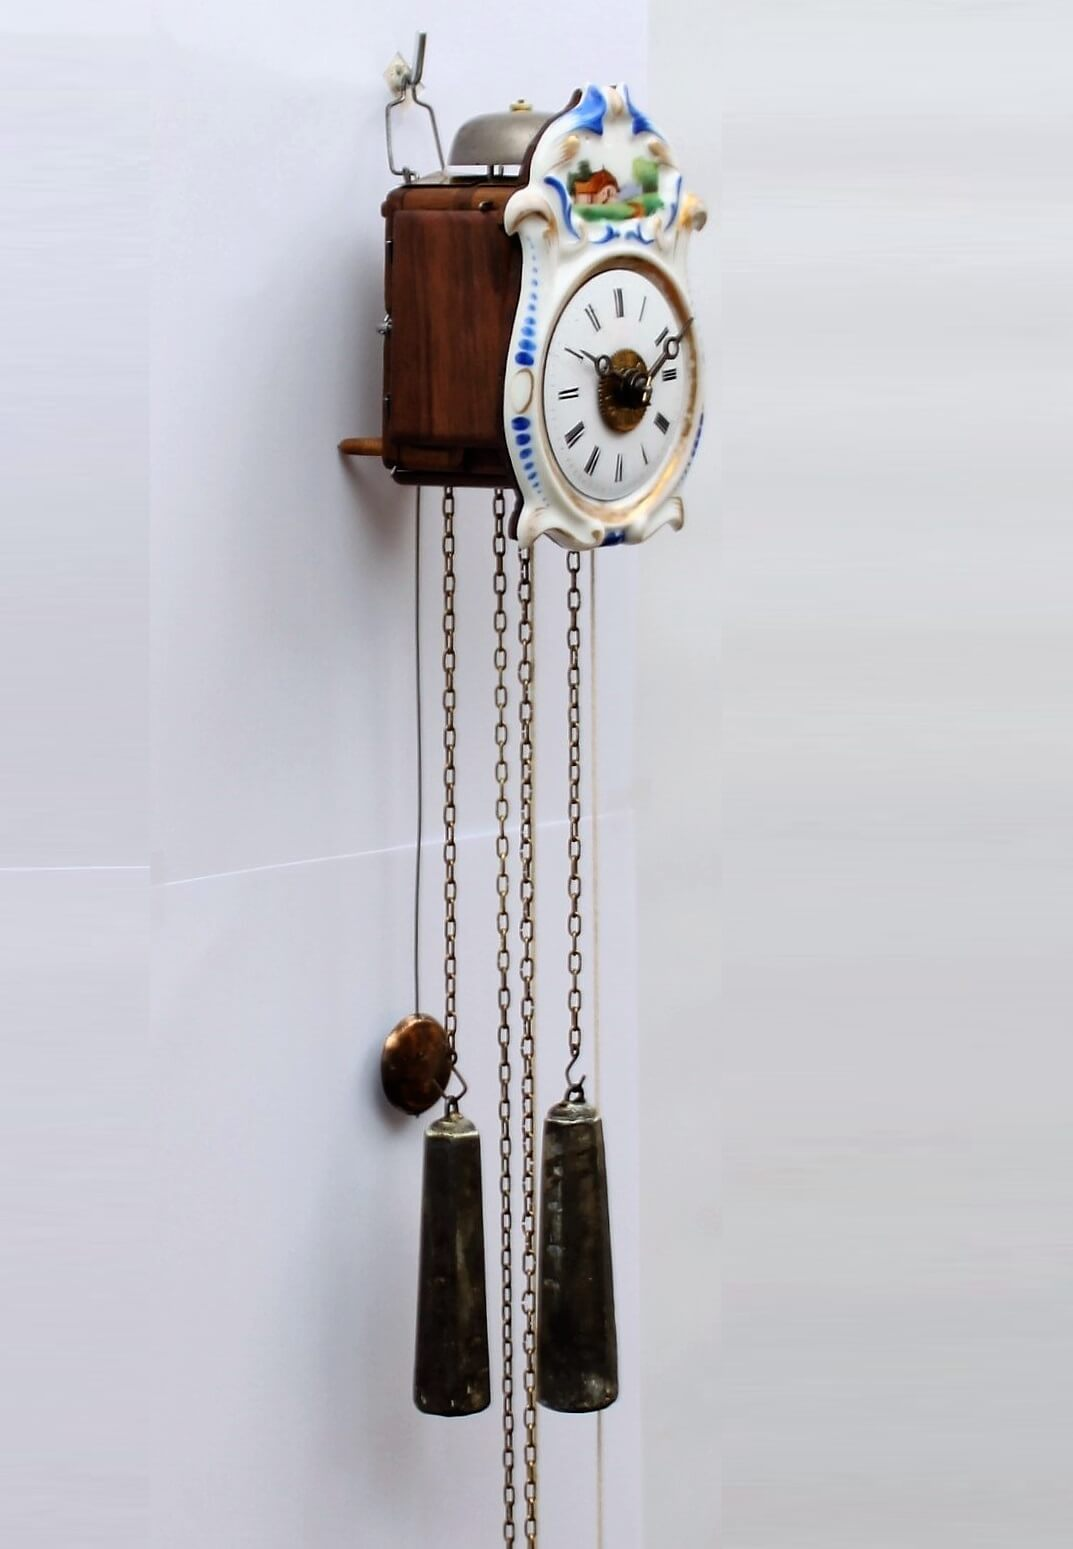 A Small German Jockele Wall Clock With Alarm Circa 1860